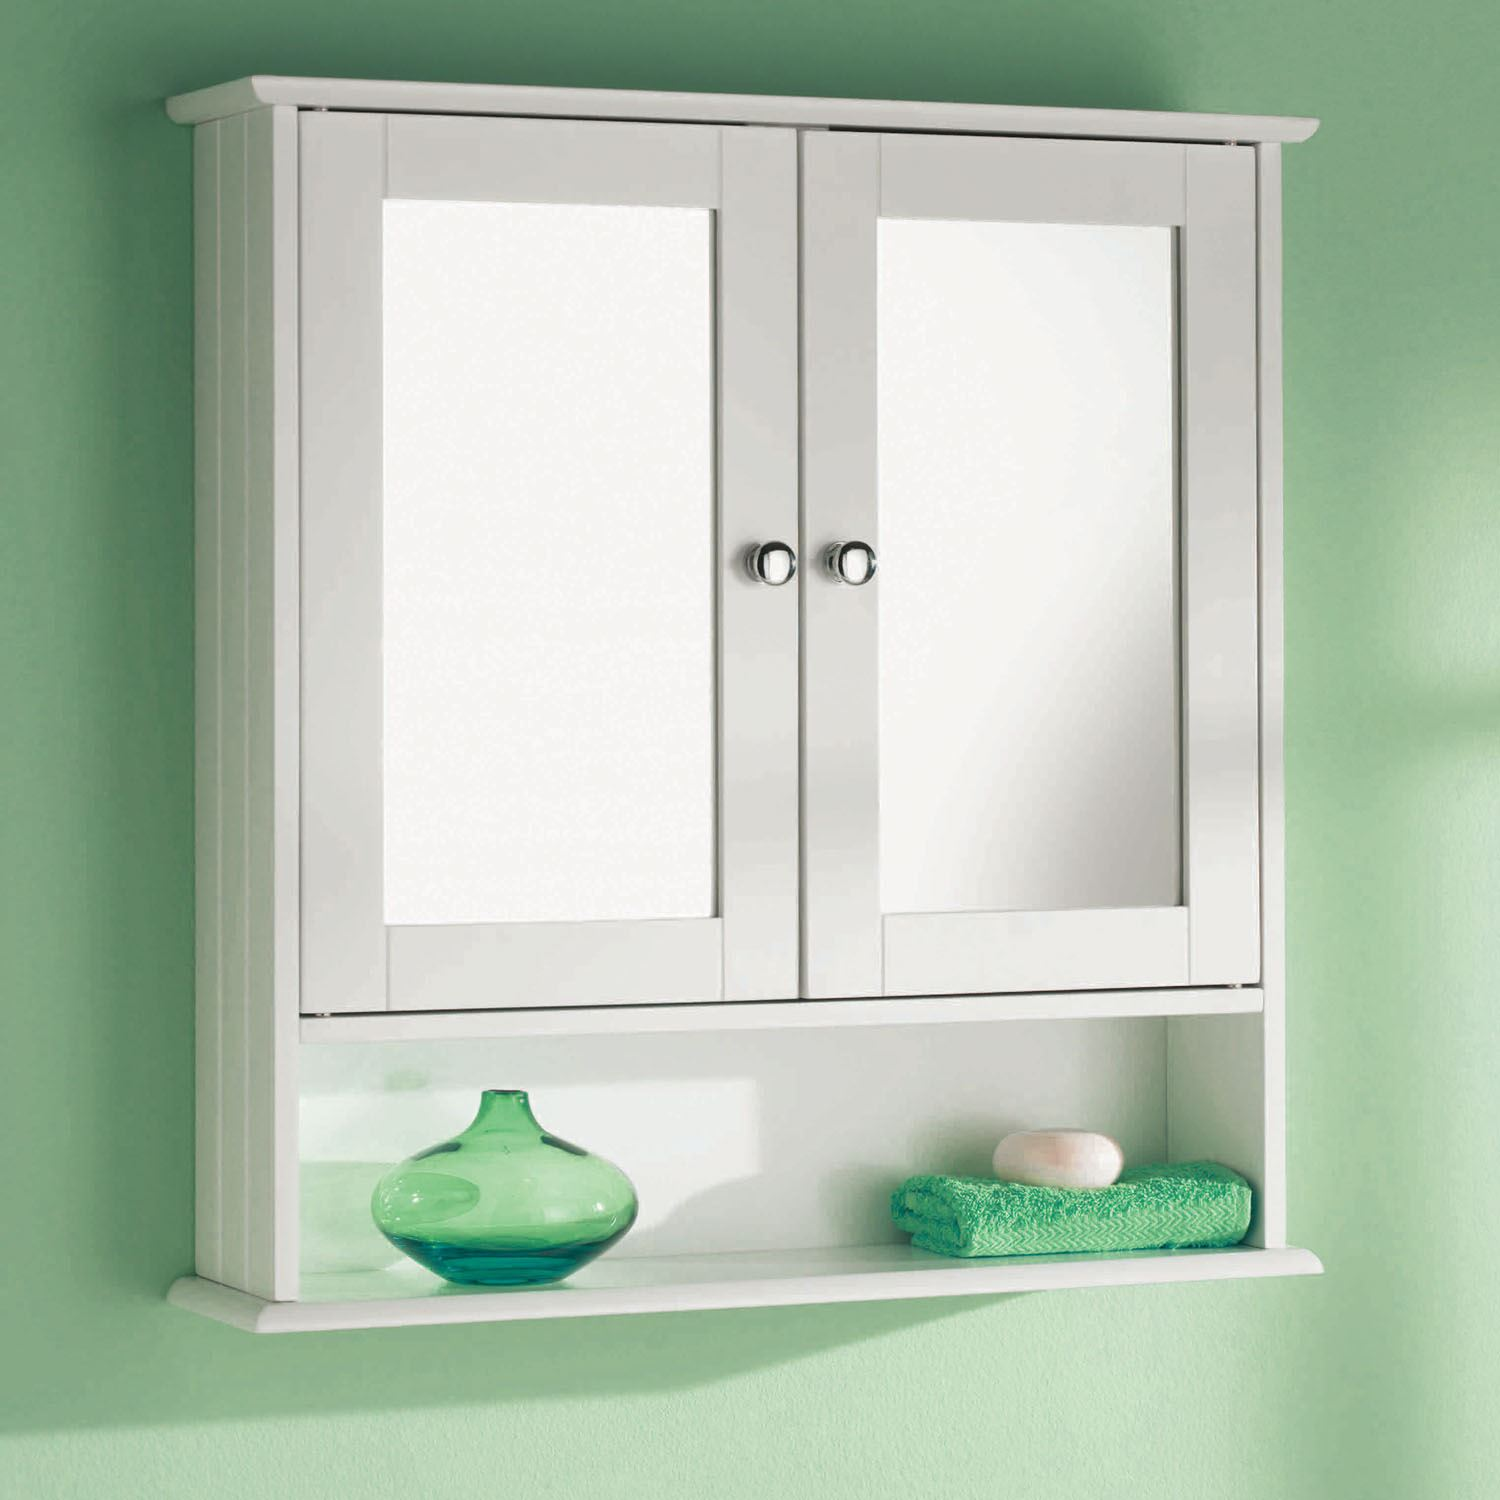 Mirrored Bathroom Cupboard White Wooden Double Mirror Door Indoor Wall Mountable